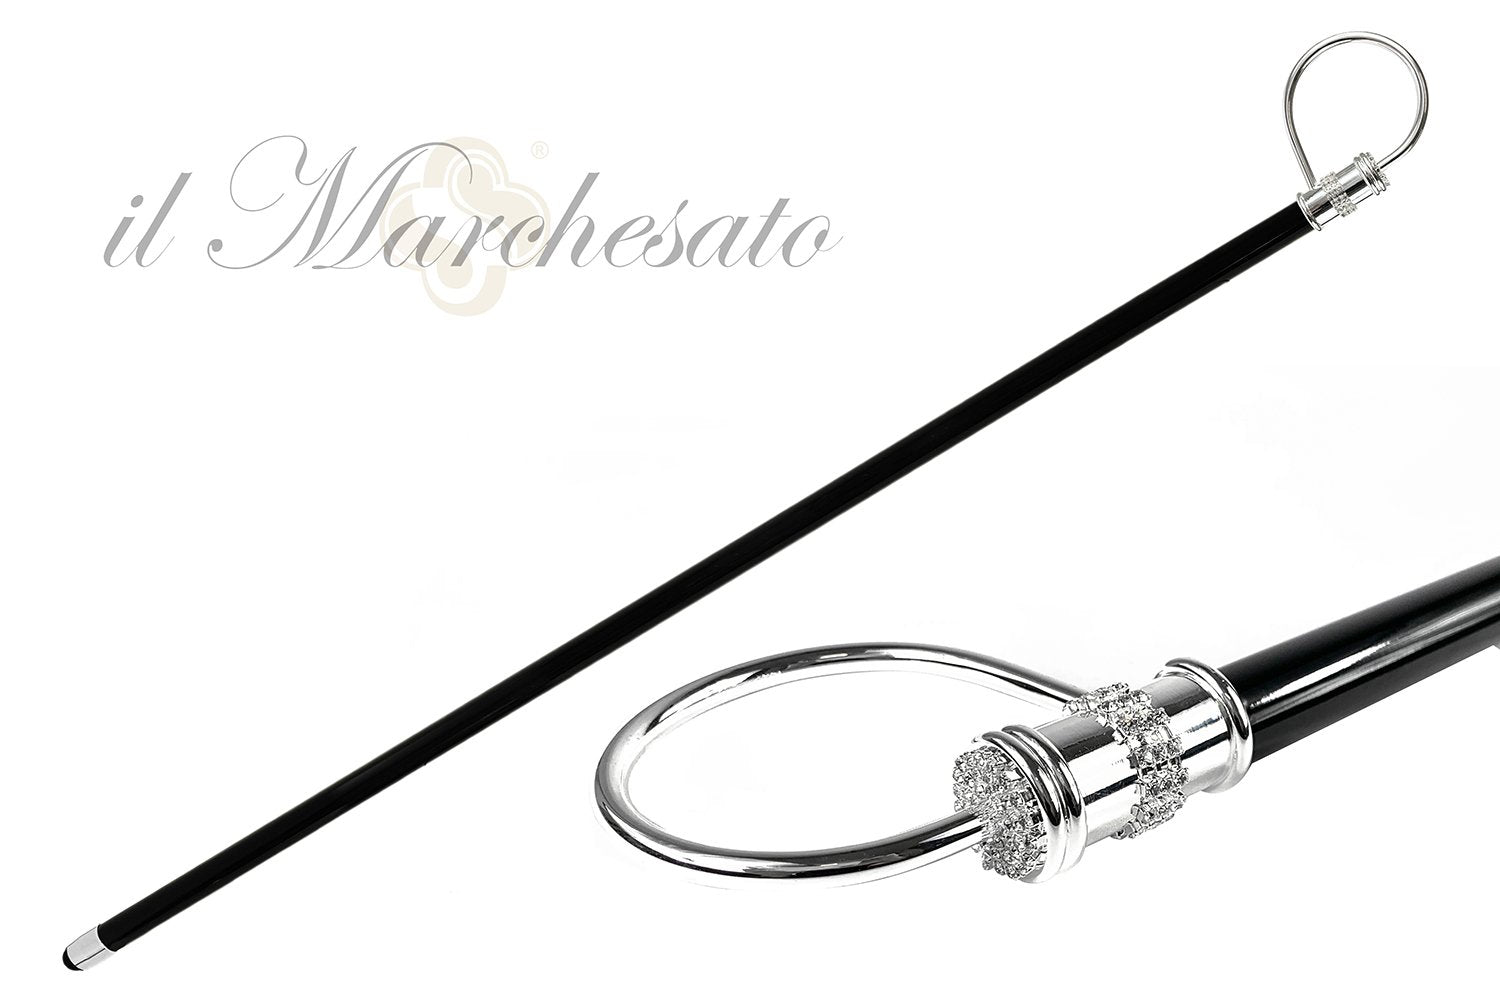 Elegant collectible Silverplated Walking stick